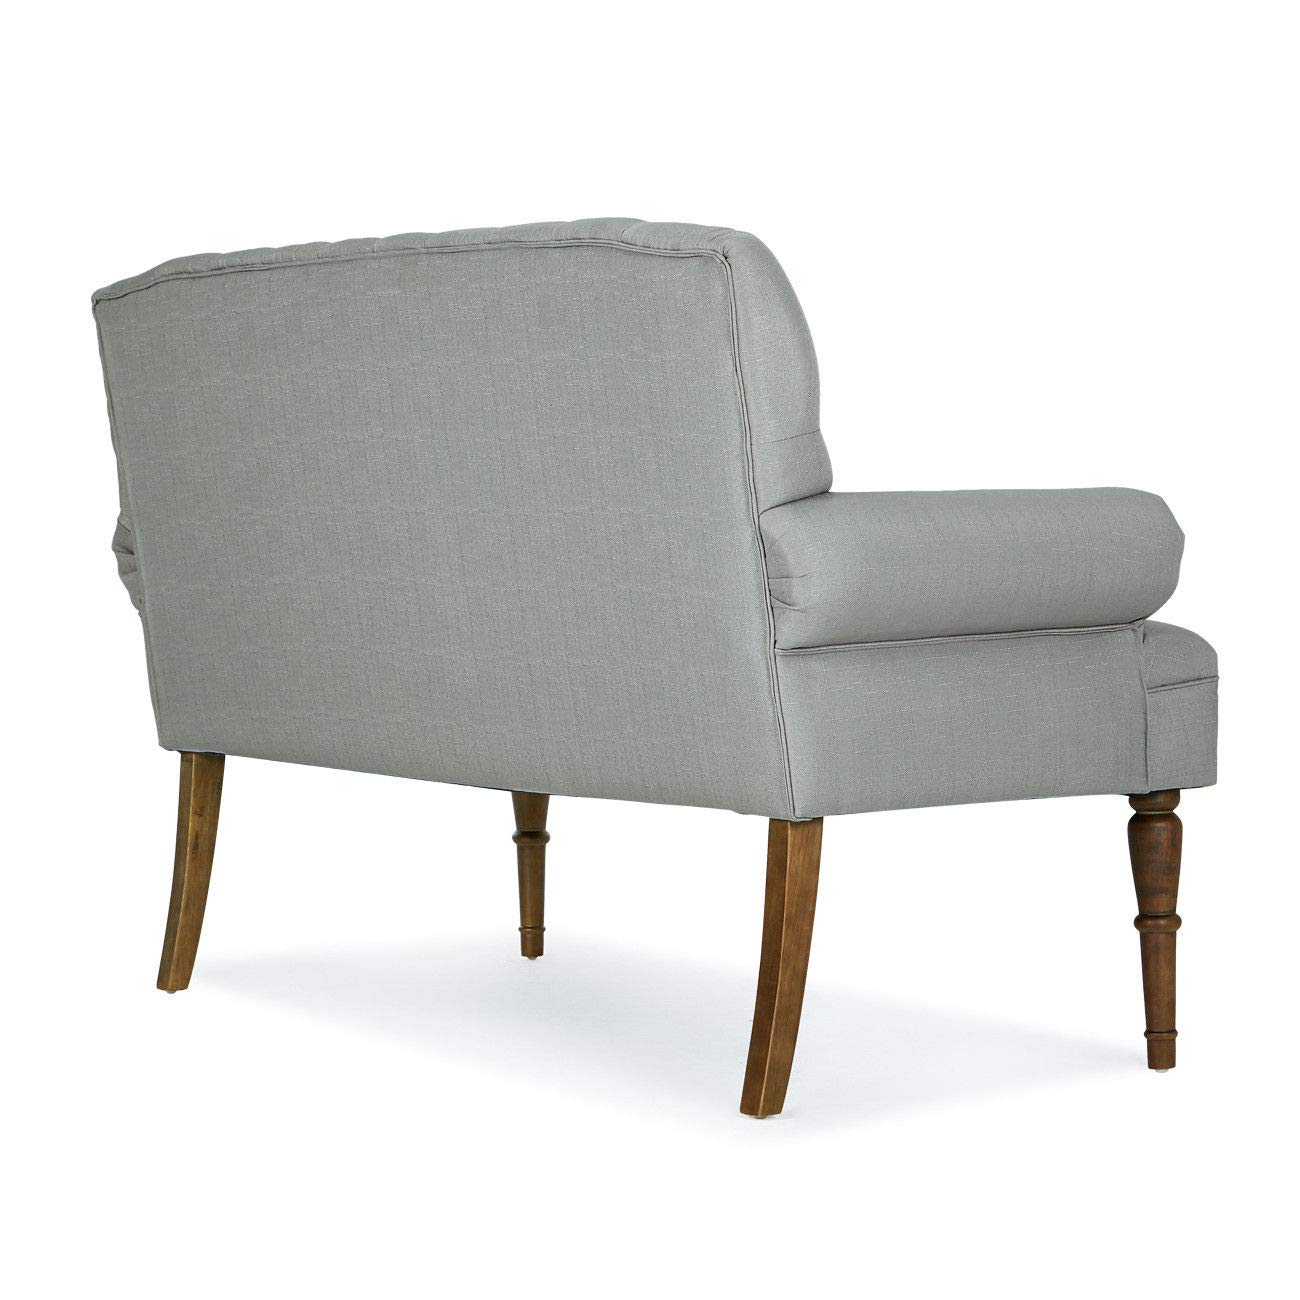 Amazon.com: Grey Button Tufted Settee Vintage Sofa Bench ...